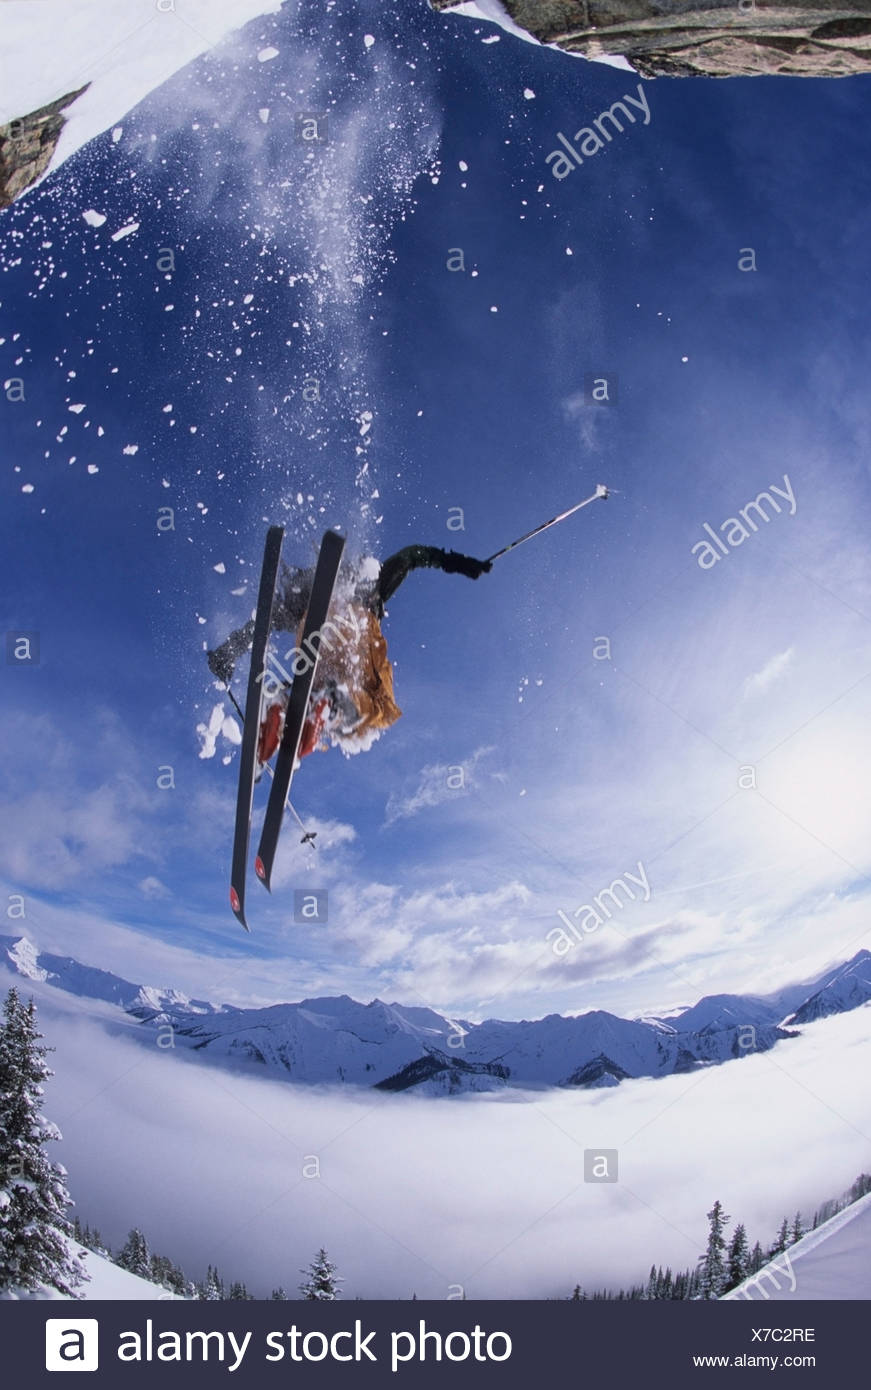 A skier catching some air after jumping a cliff in the backcountry of Kickinghorse Resort Area, Golden, British Columbia, Canada - Stock Image